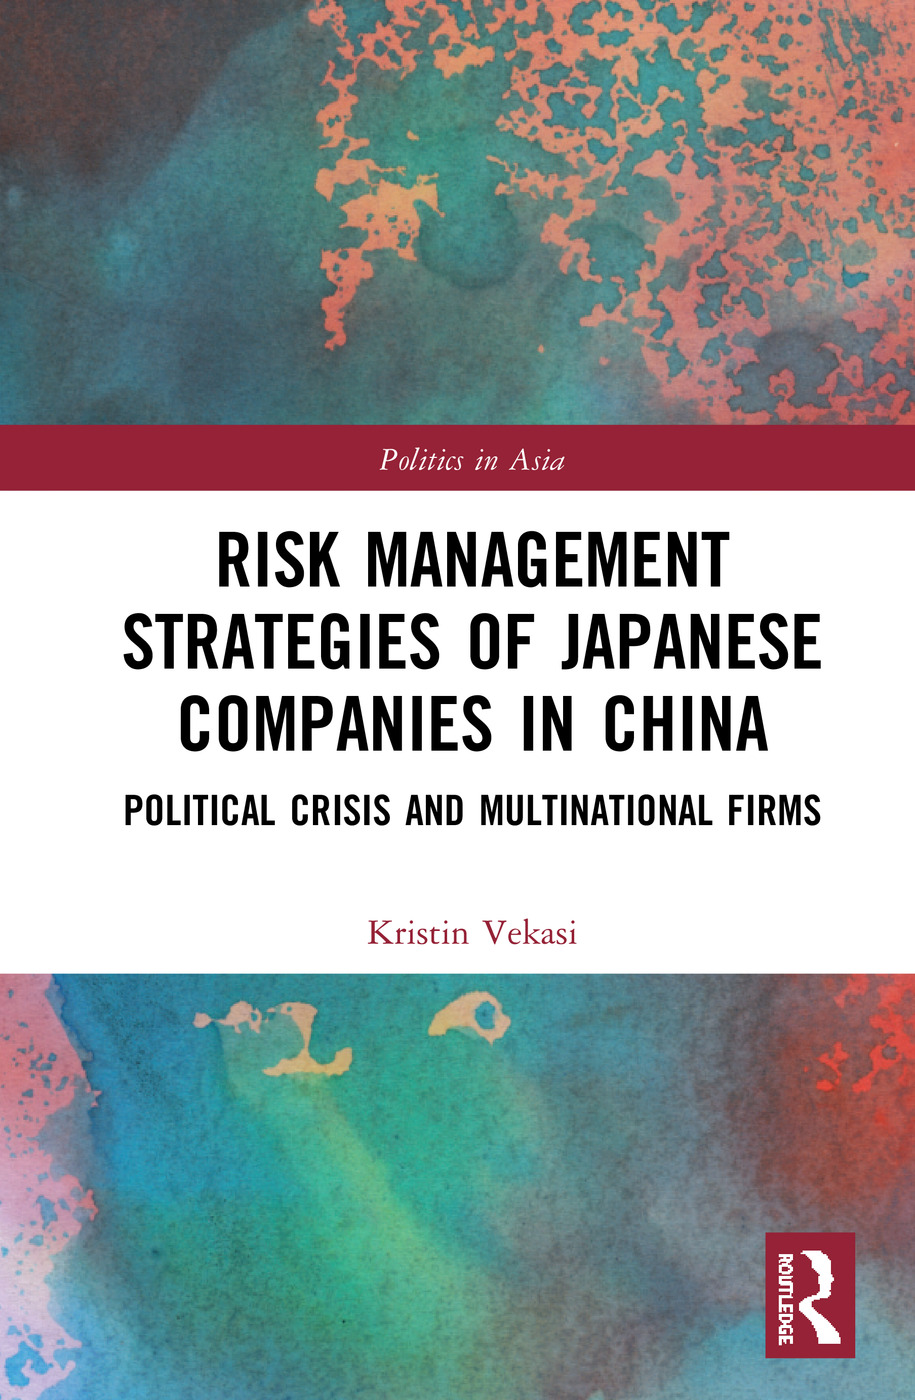 Risk Management Strategies of Japanese Companies in China: Political Crisis and Multinational Firms book cover